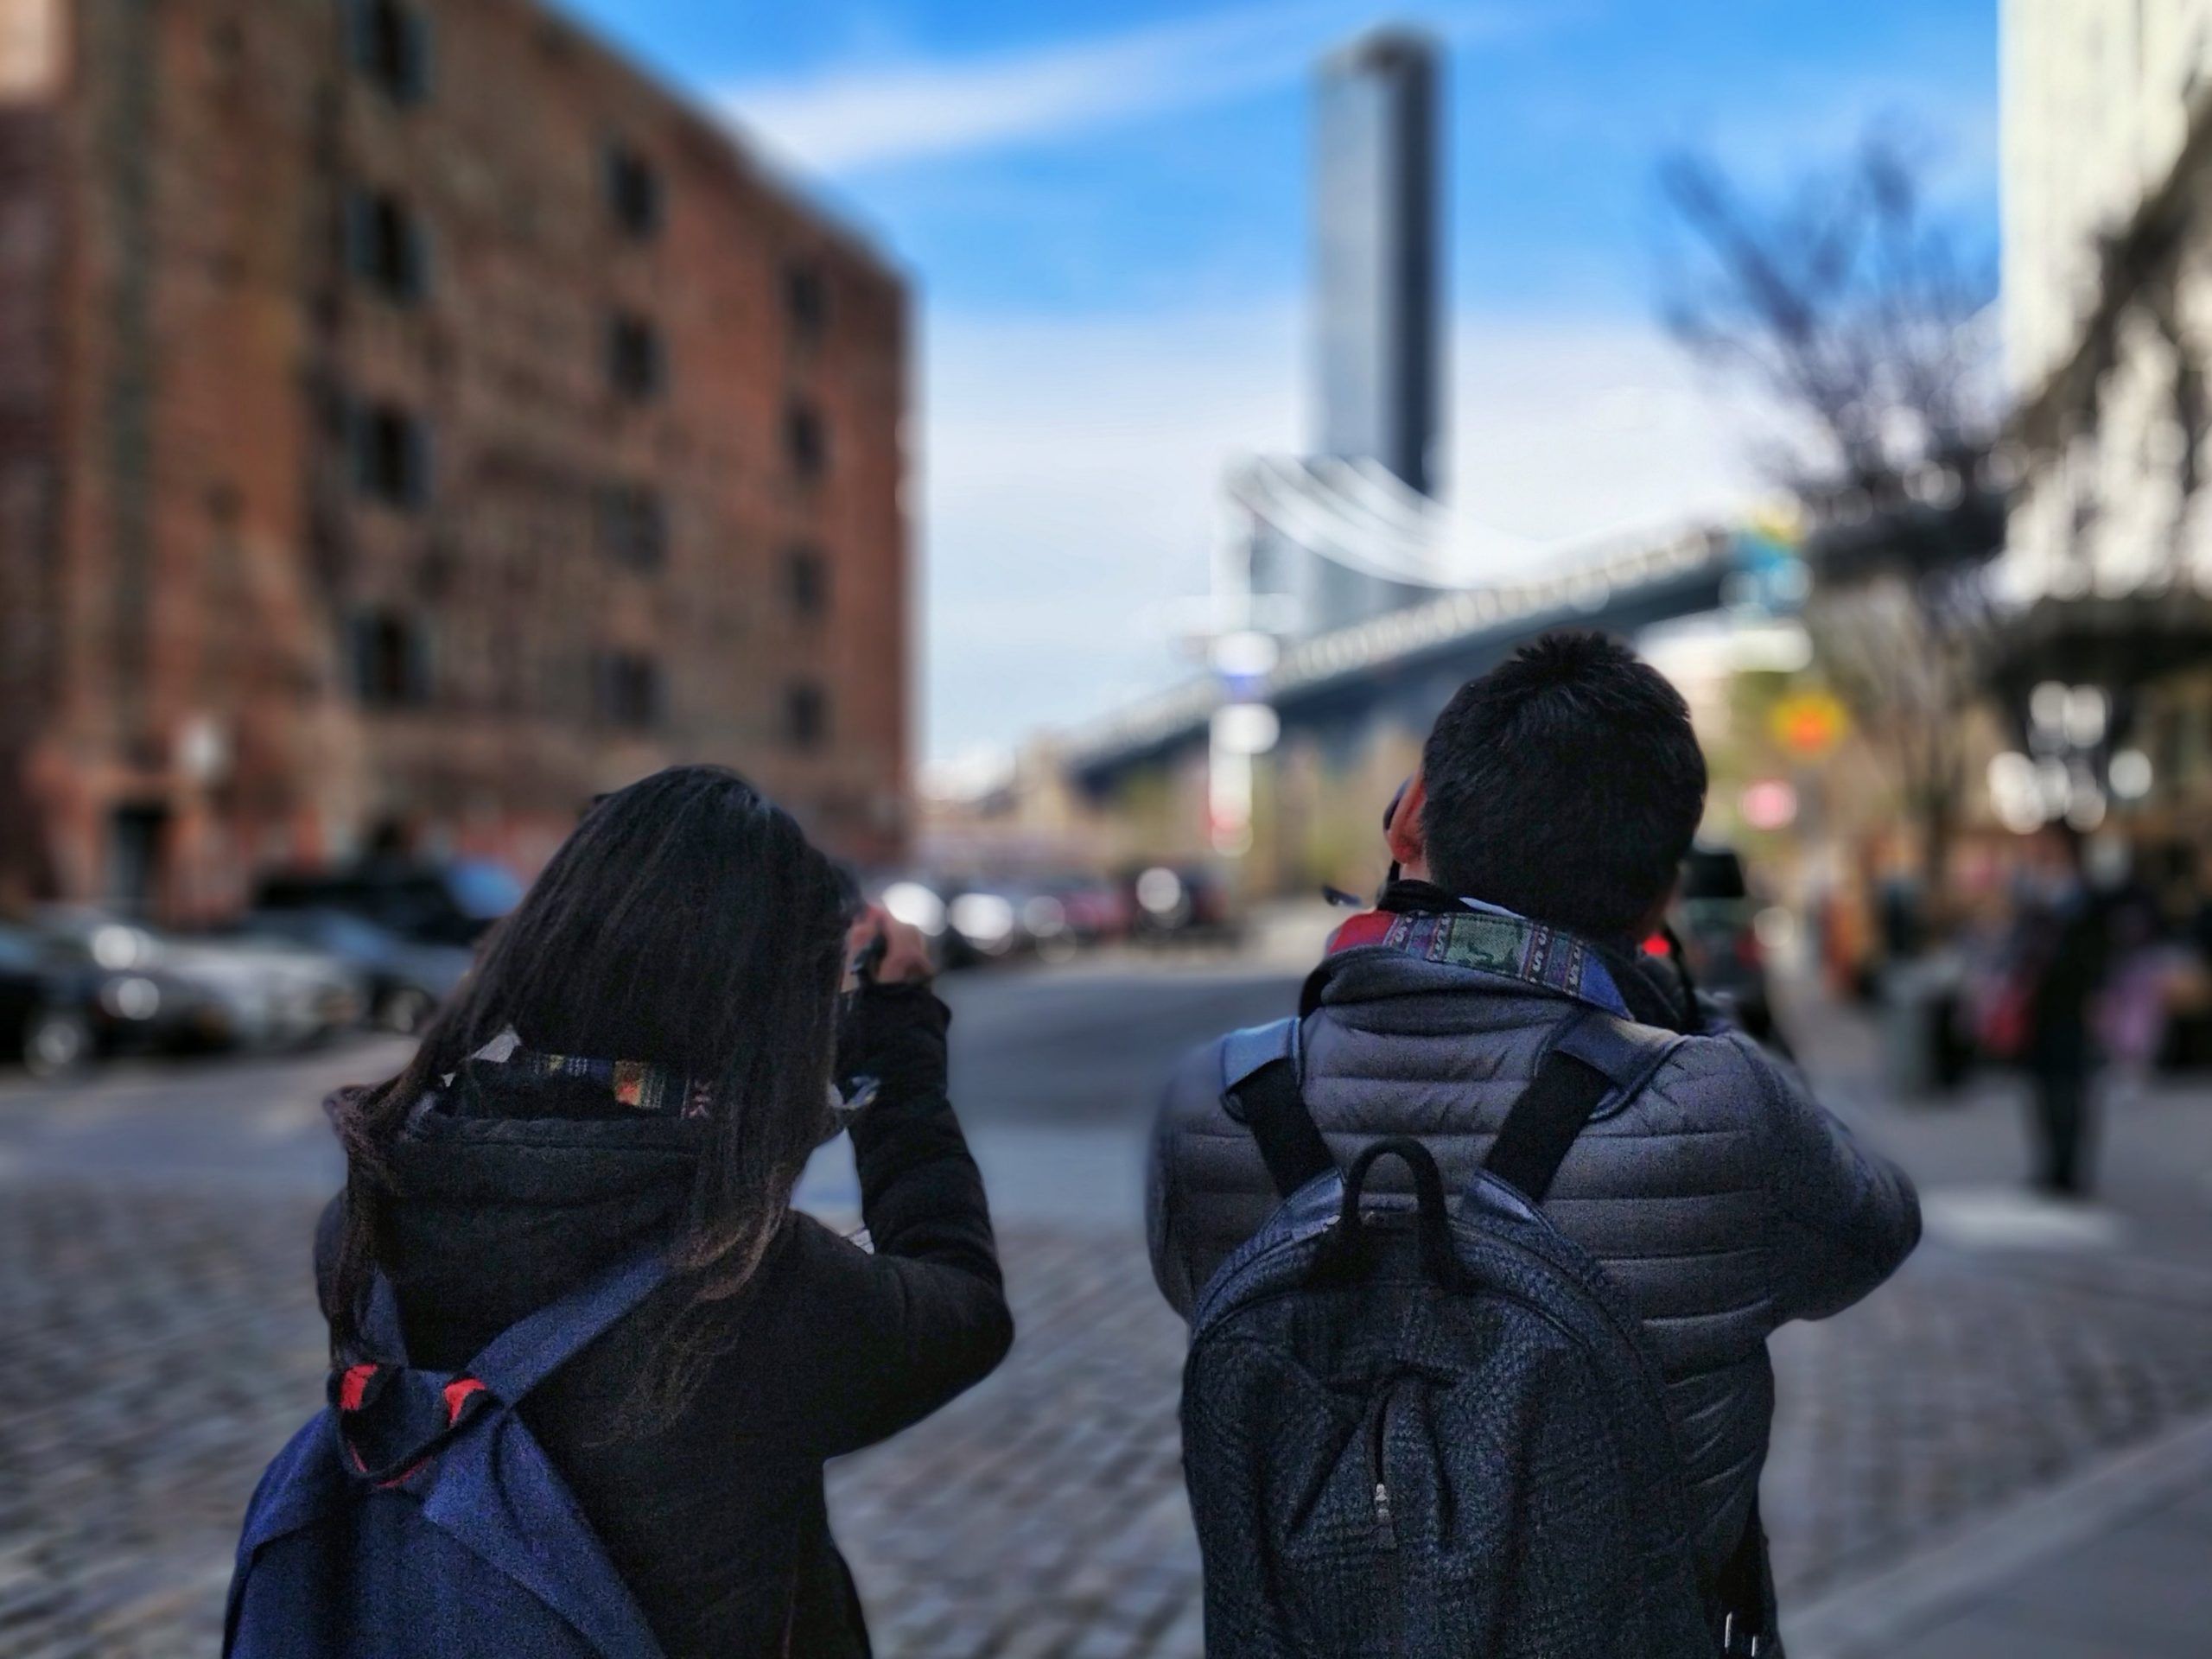 Tourists are photographing every corner of DUMBO area